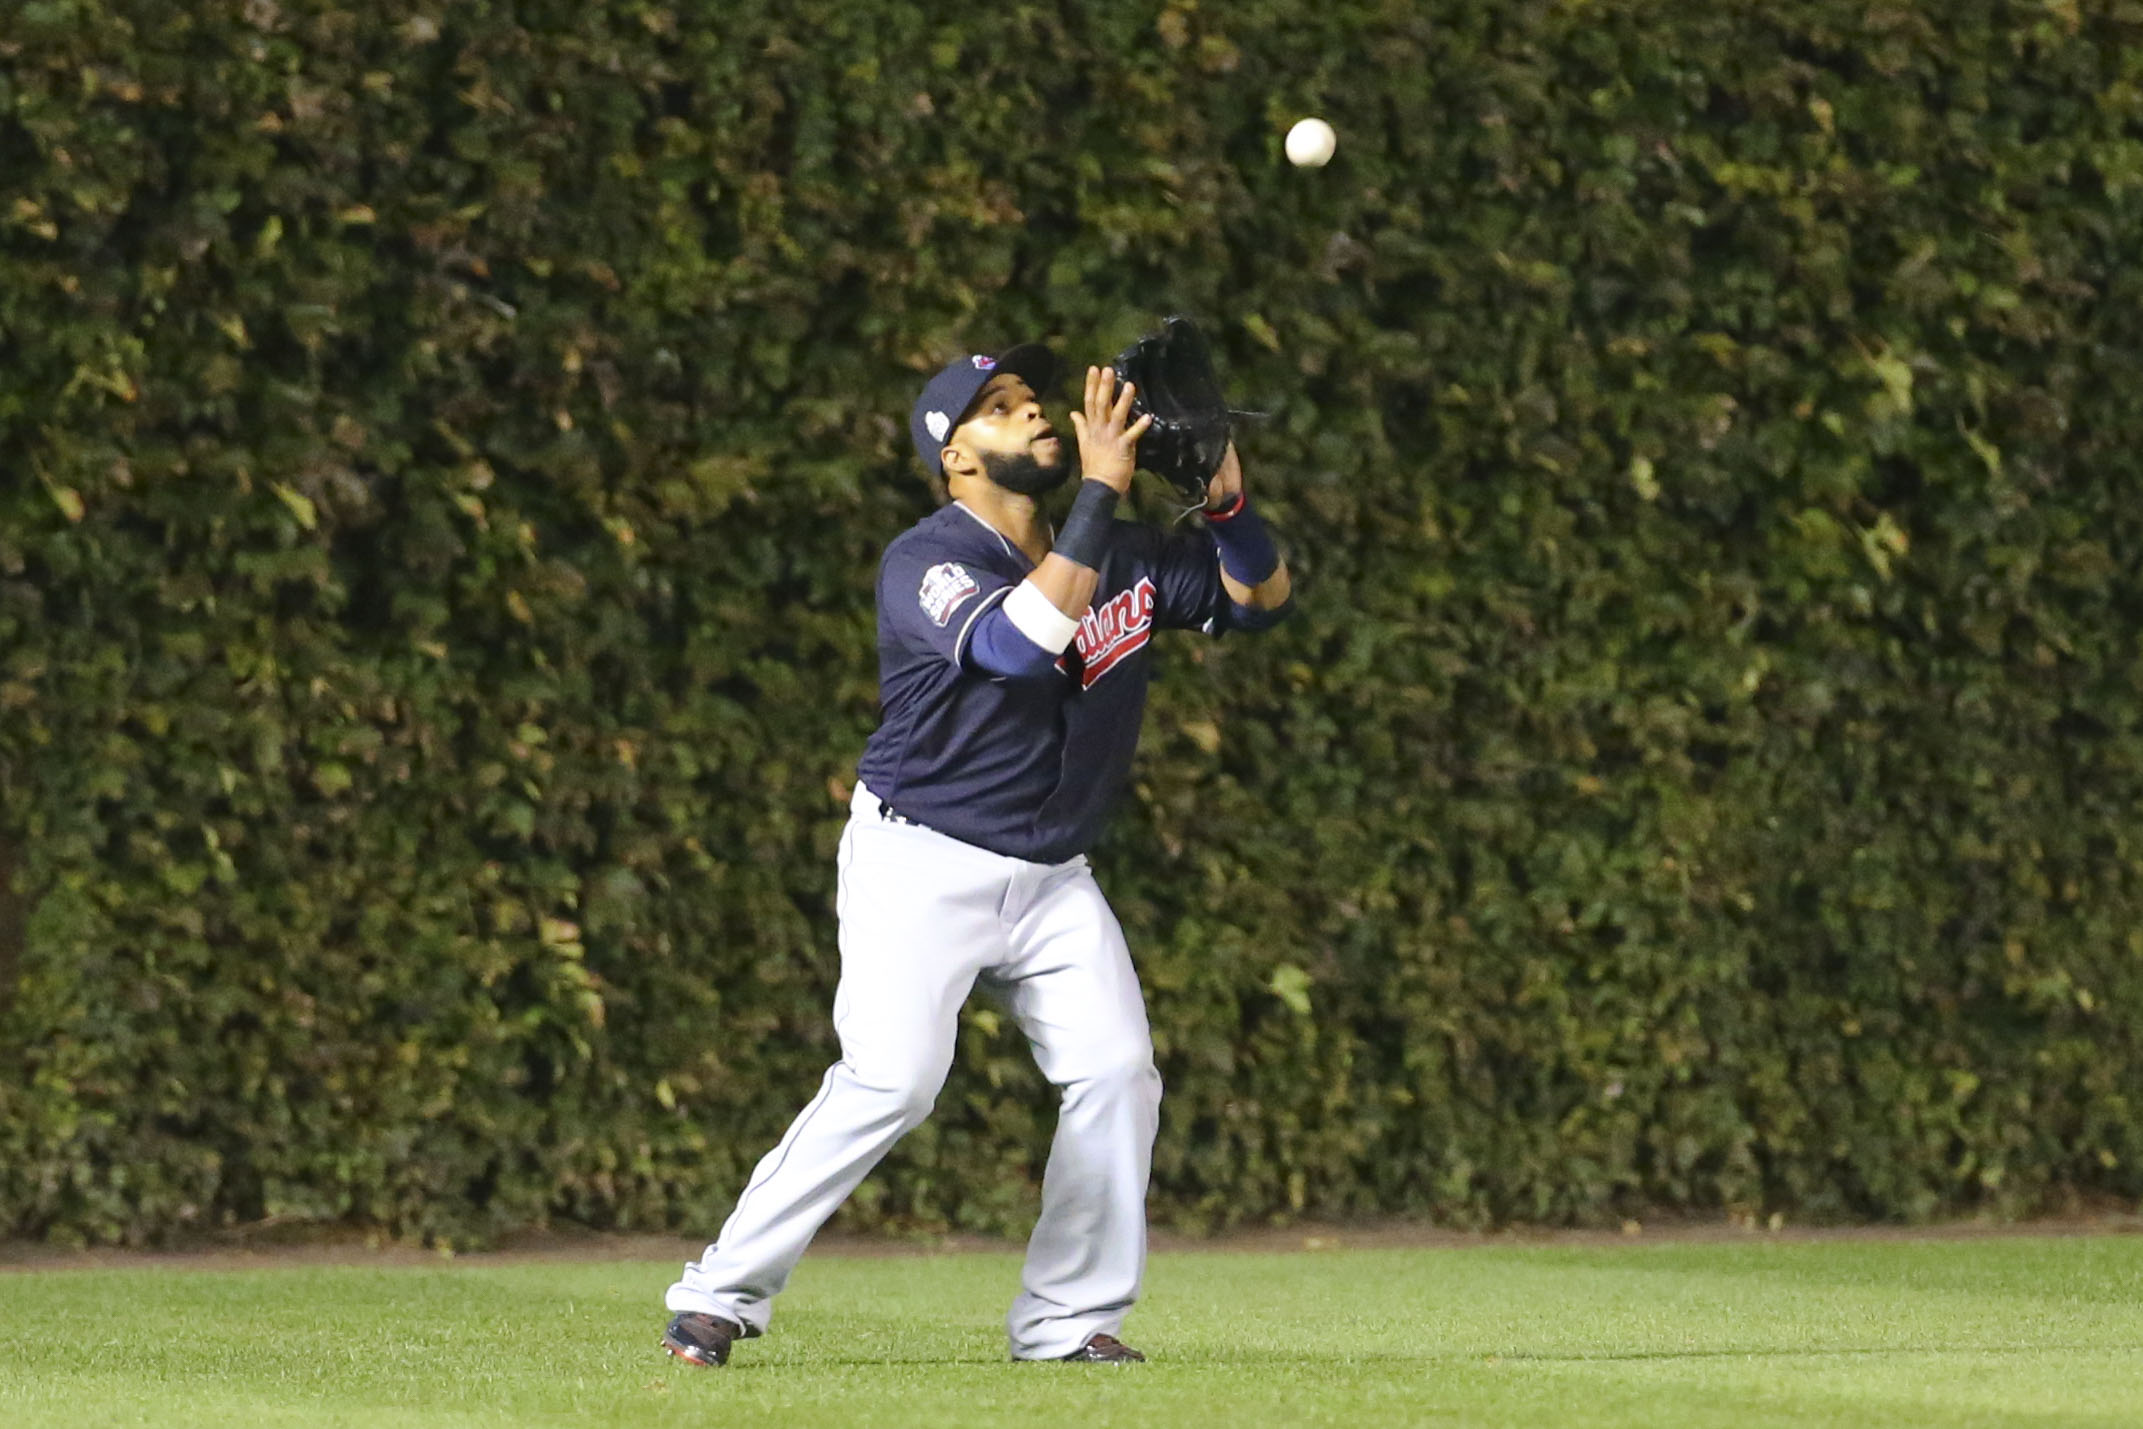 9638472-mlb-world-series-cleveland-indians-at-chicago-cubs